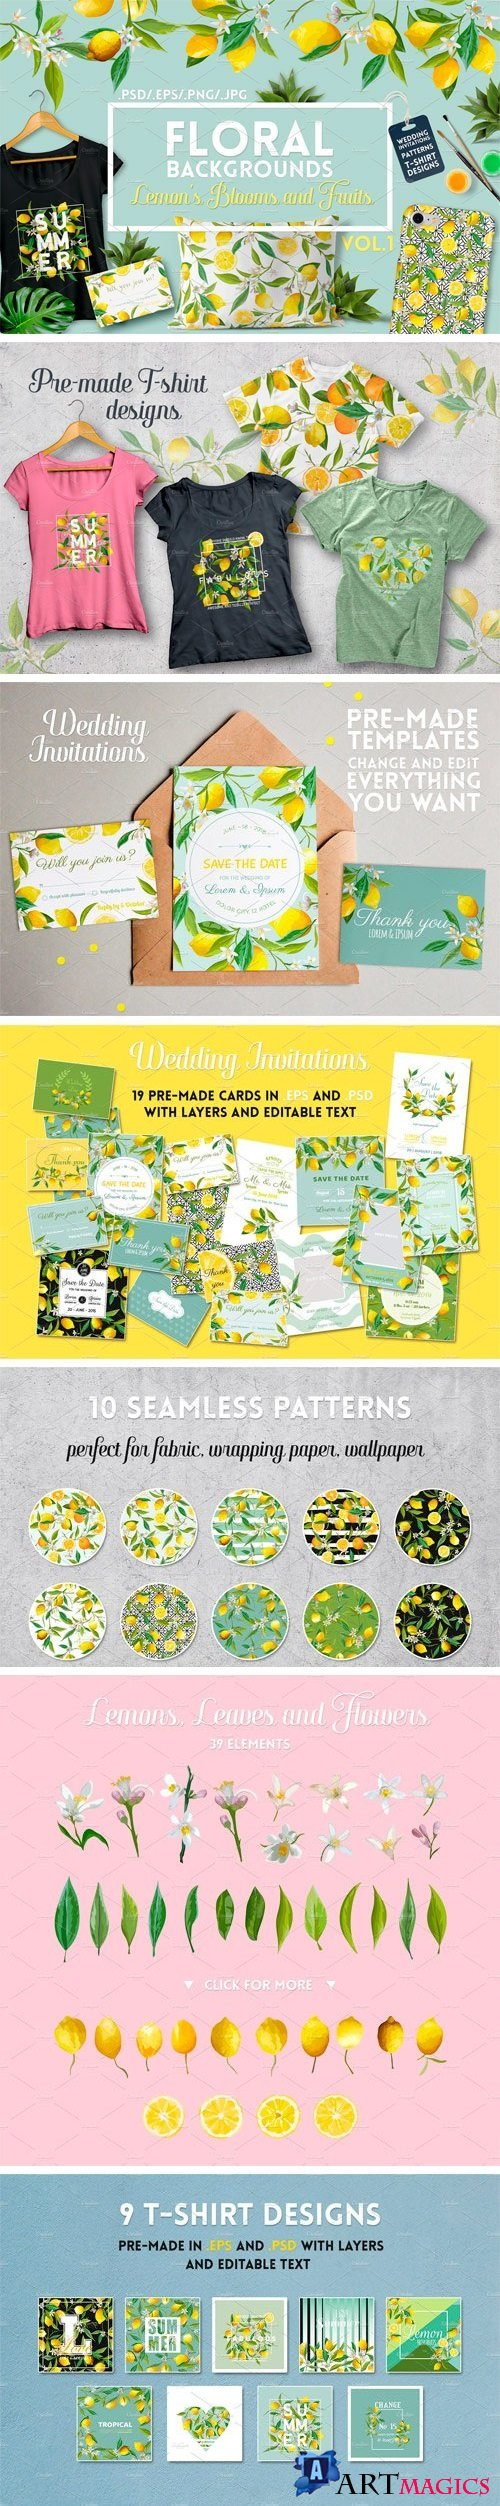 Watercolor Floral Design Set Lemons - 2079943